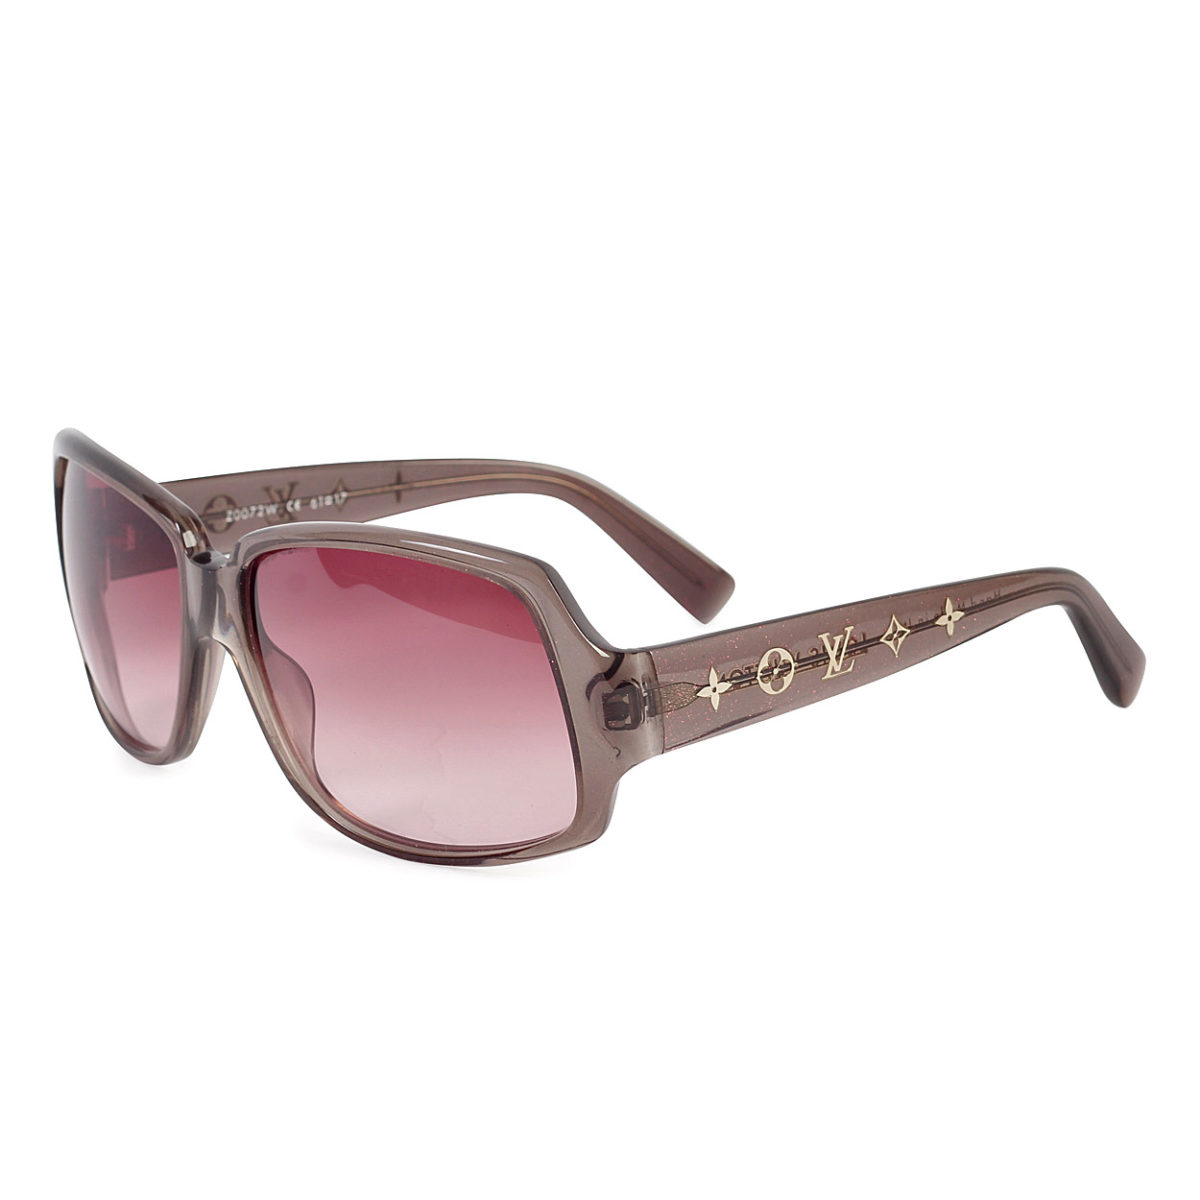 b88a5379a36 LOUIS VUITTON Obsession GM Sunglasses - NEW | Luxity